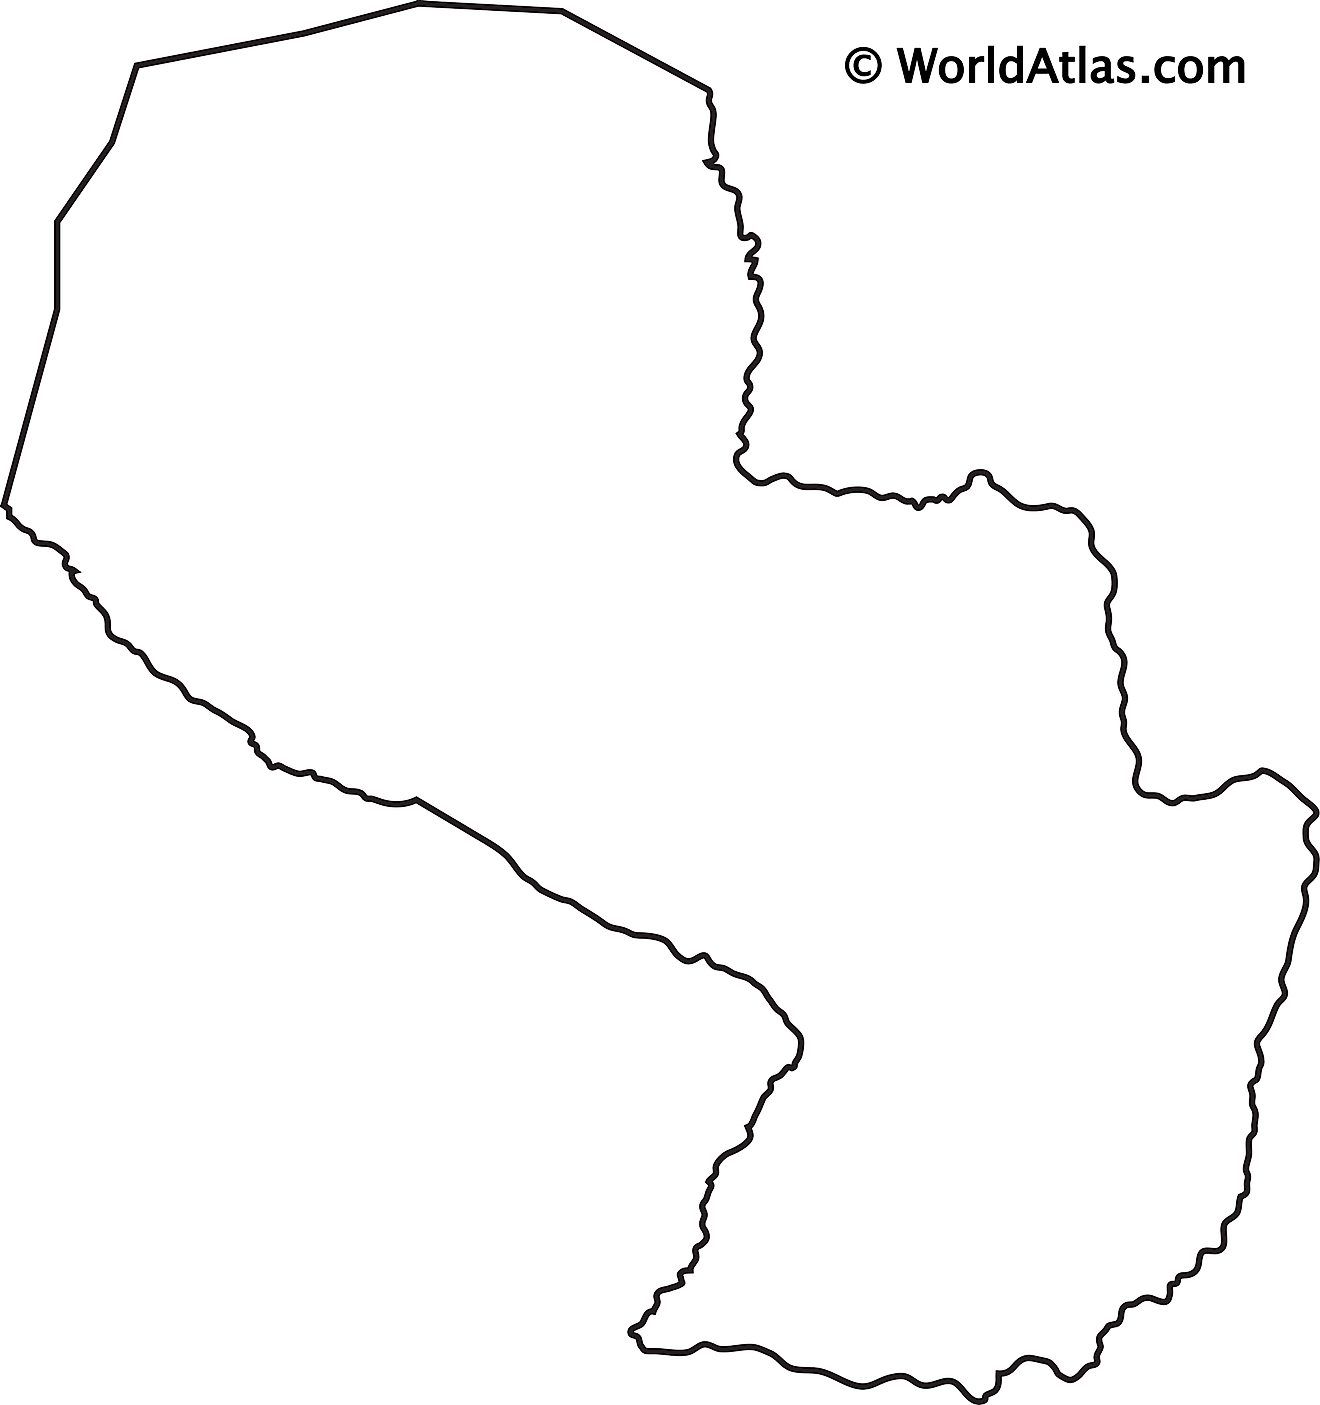 Blank Outline Map of Paraguay